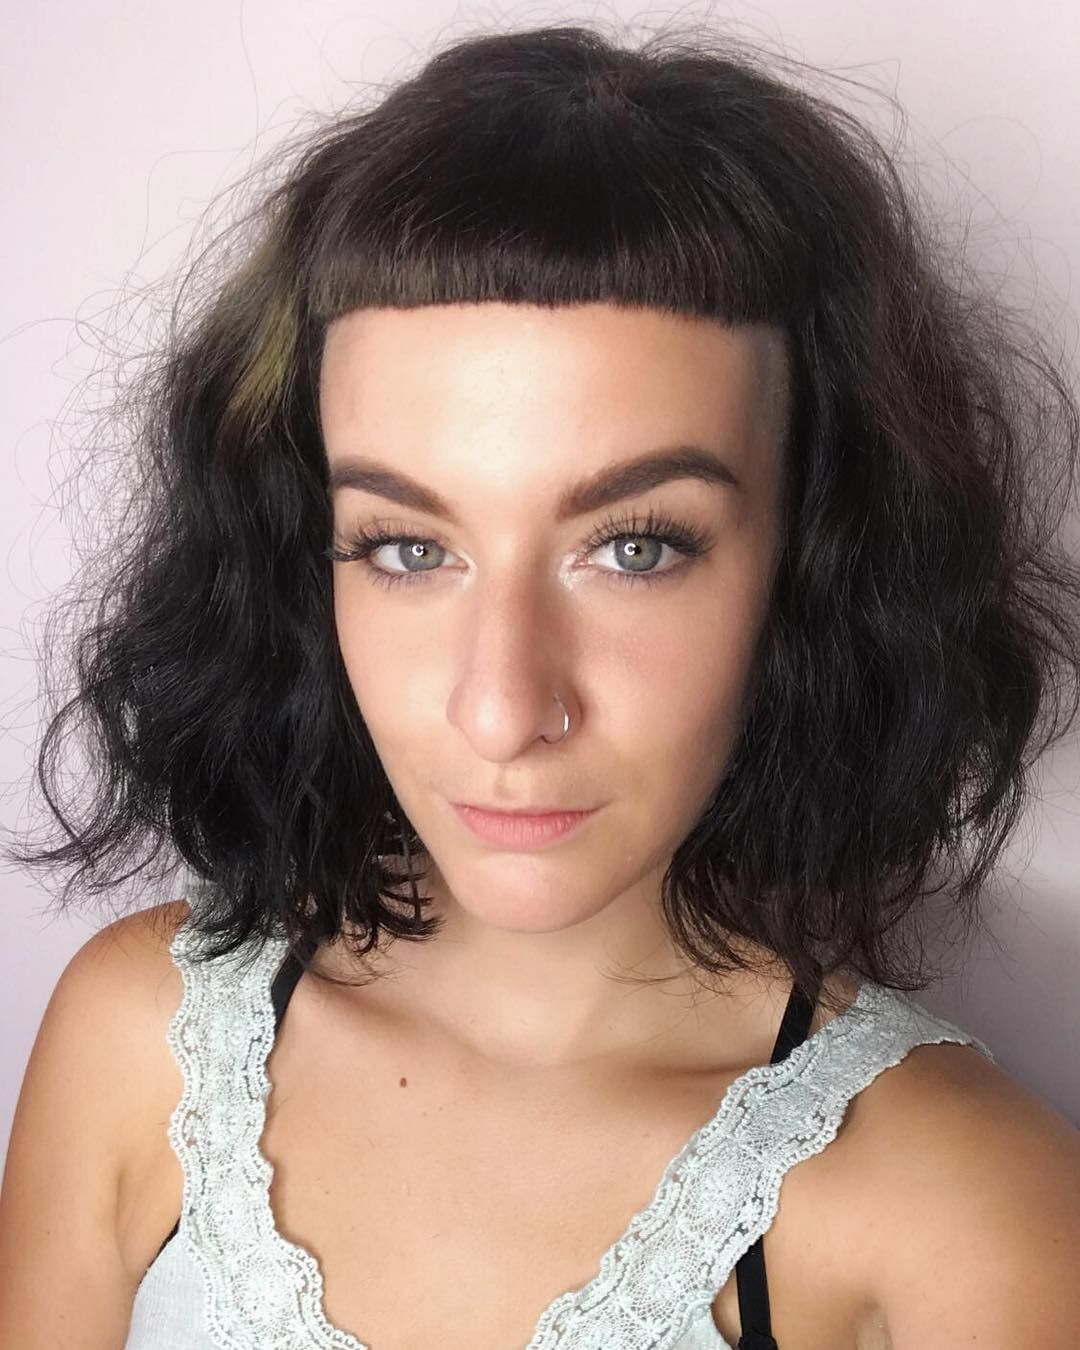 All sizes soft wavy fringe bob with micro bangs and